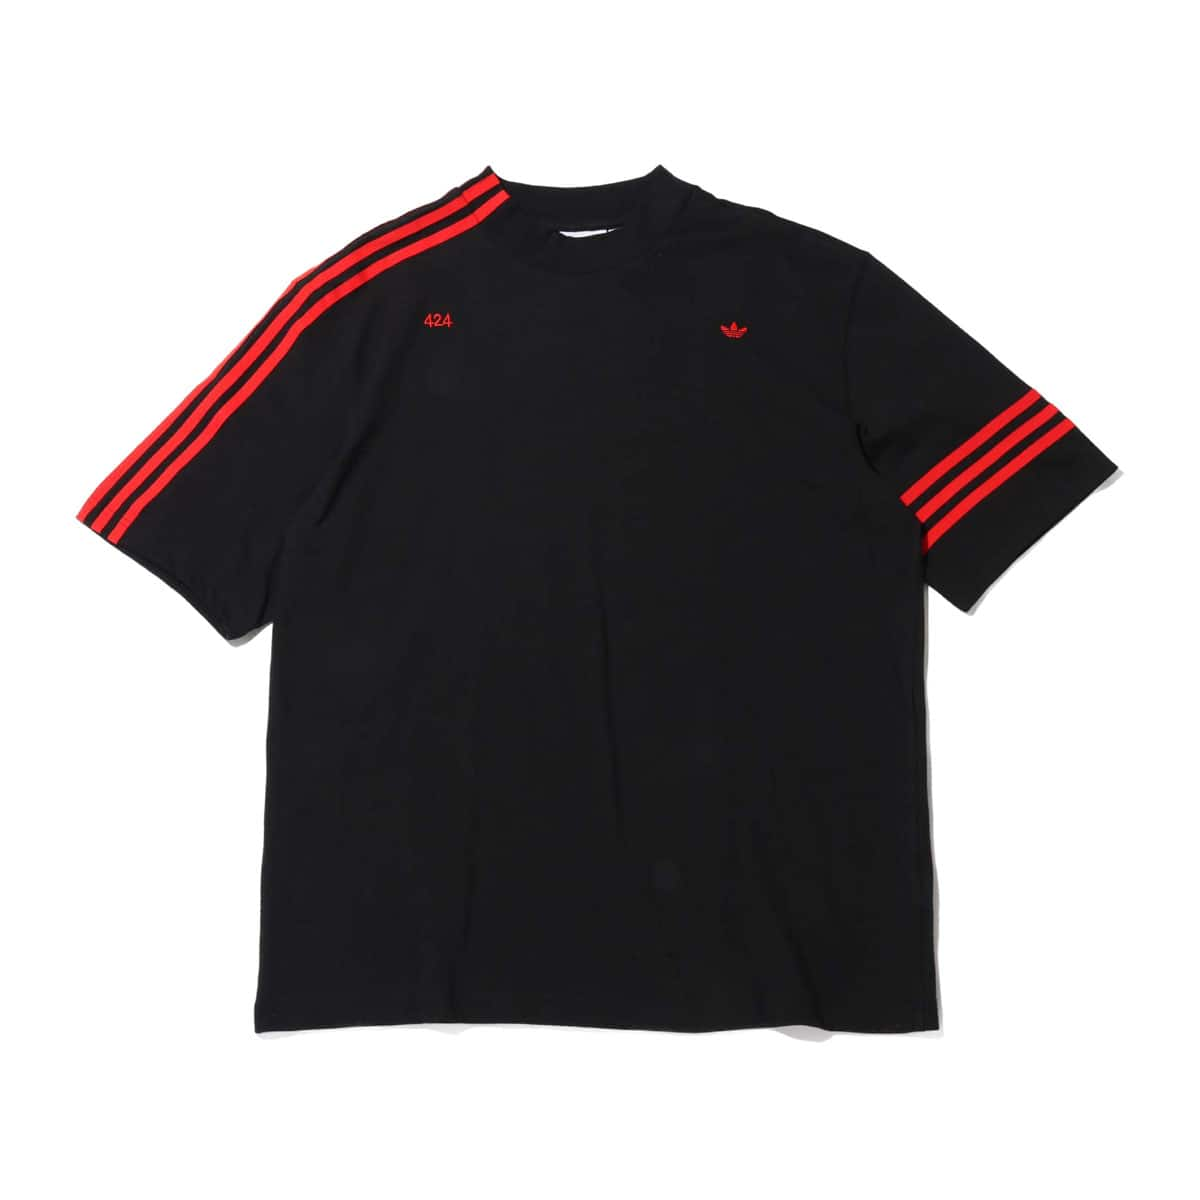 adidas 424 VOCAL TEE BLACK 20SS-S_photo_large